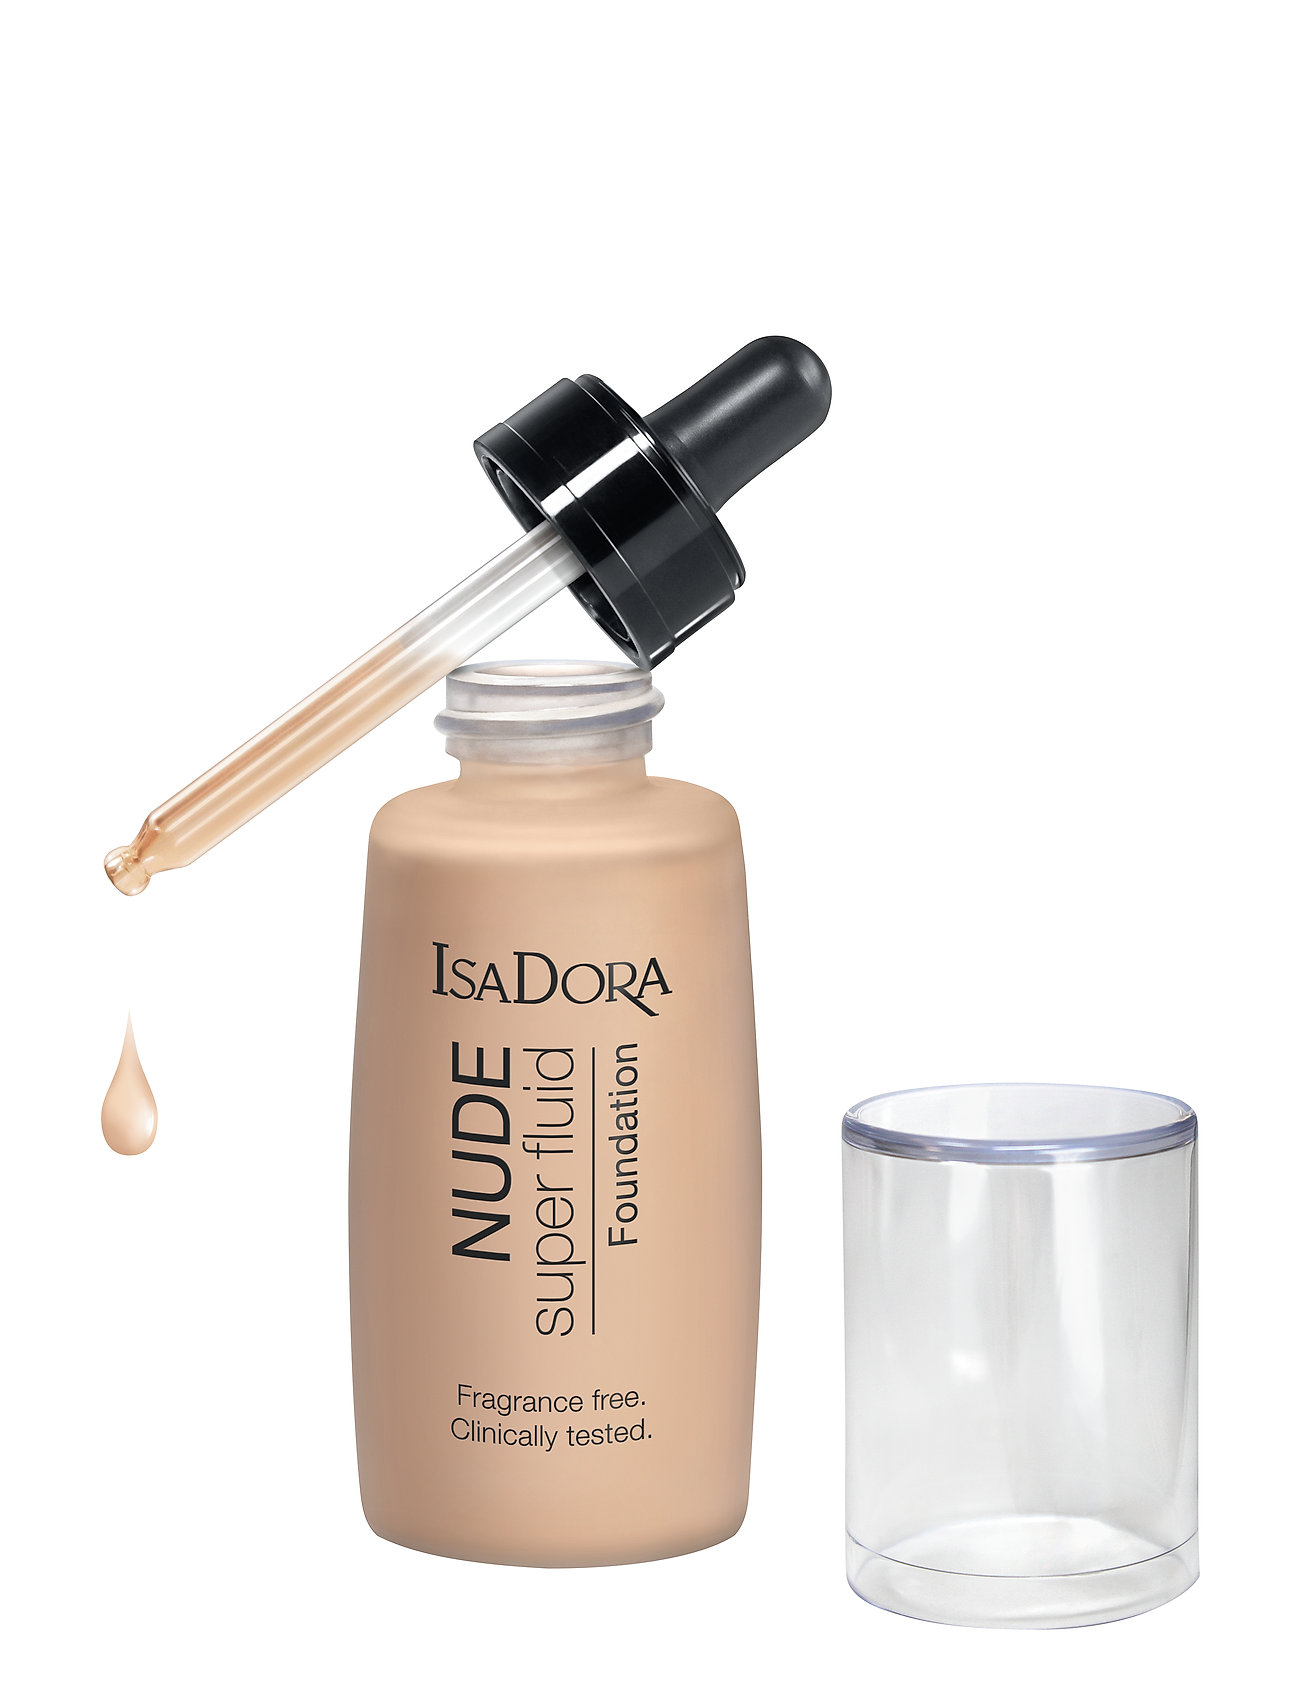 Image of Nude Fluid Foundation 10 Nude Porcelain Foundation Makeup Isadora (3452091293)